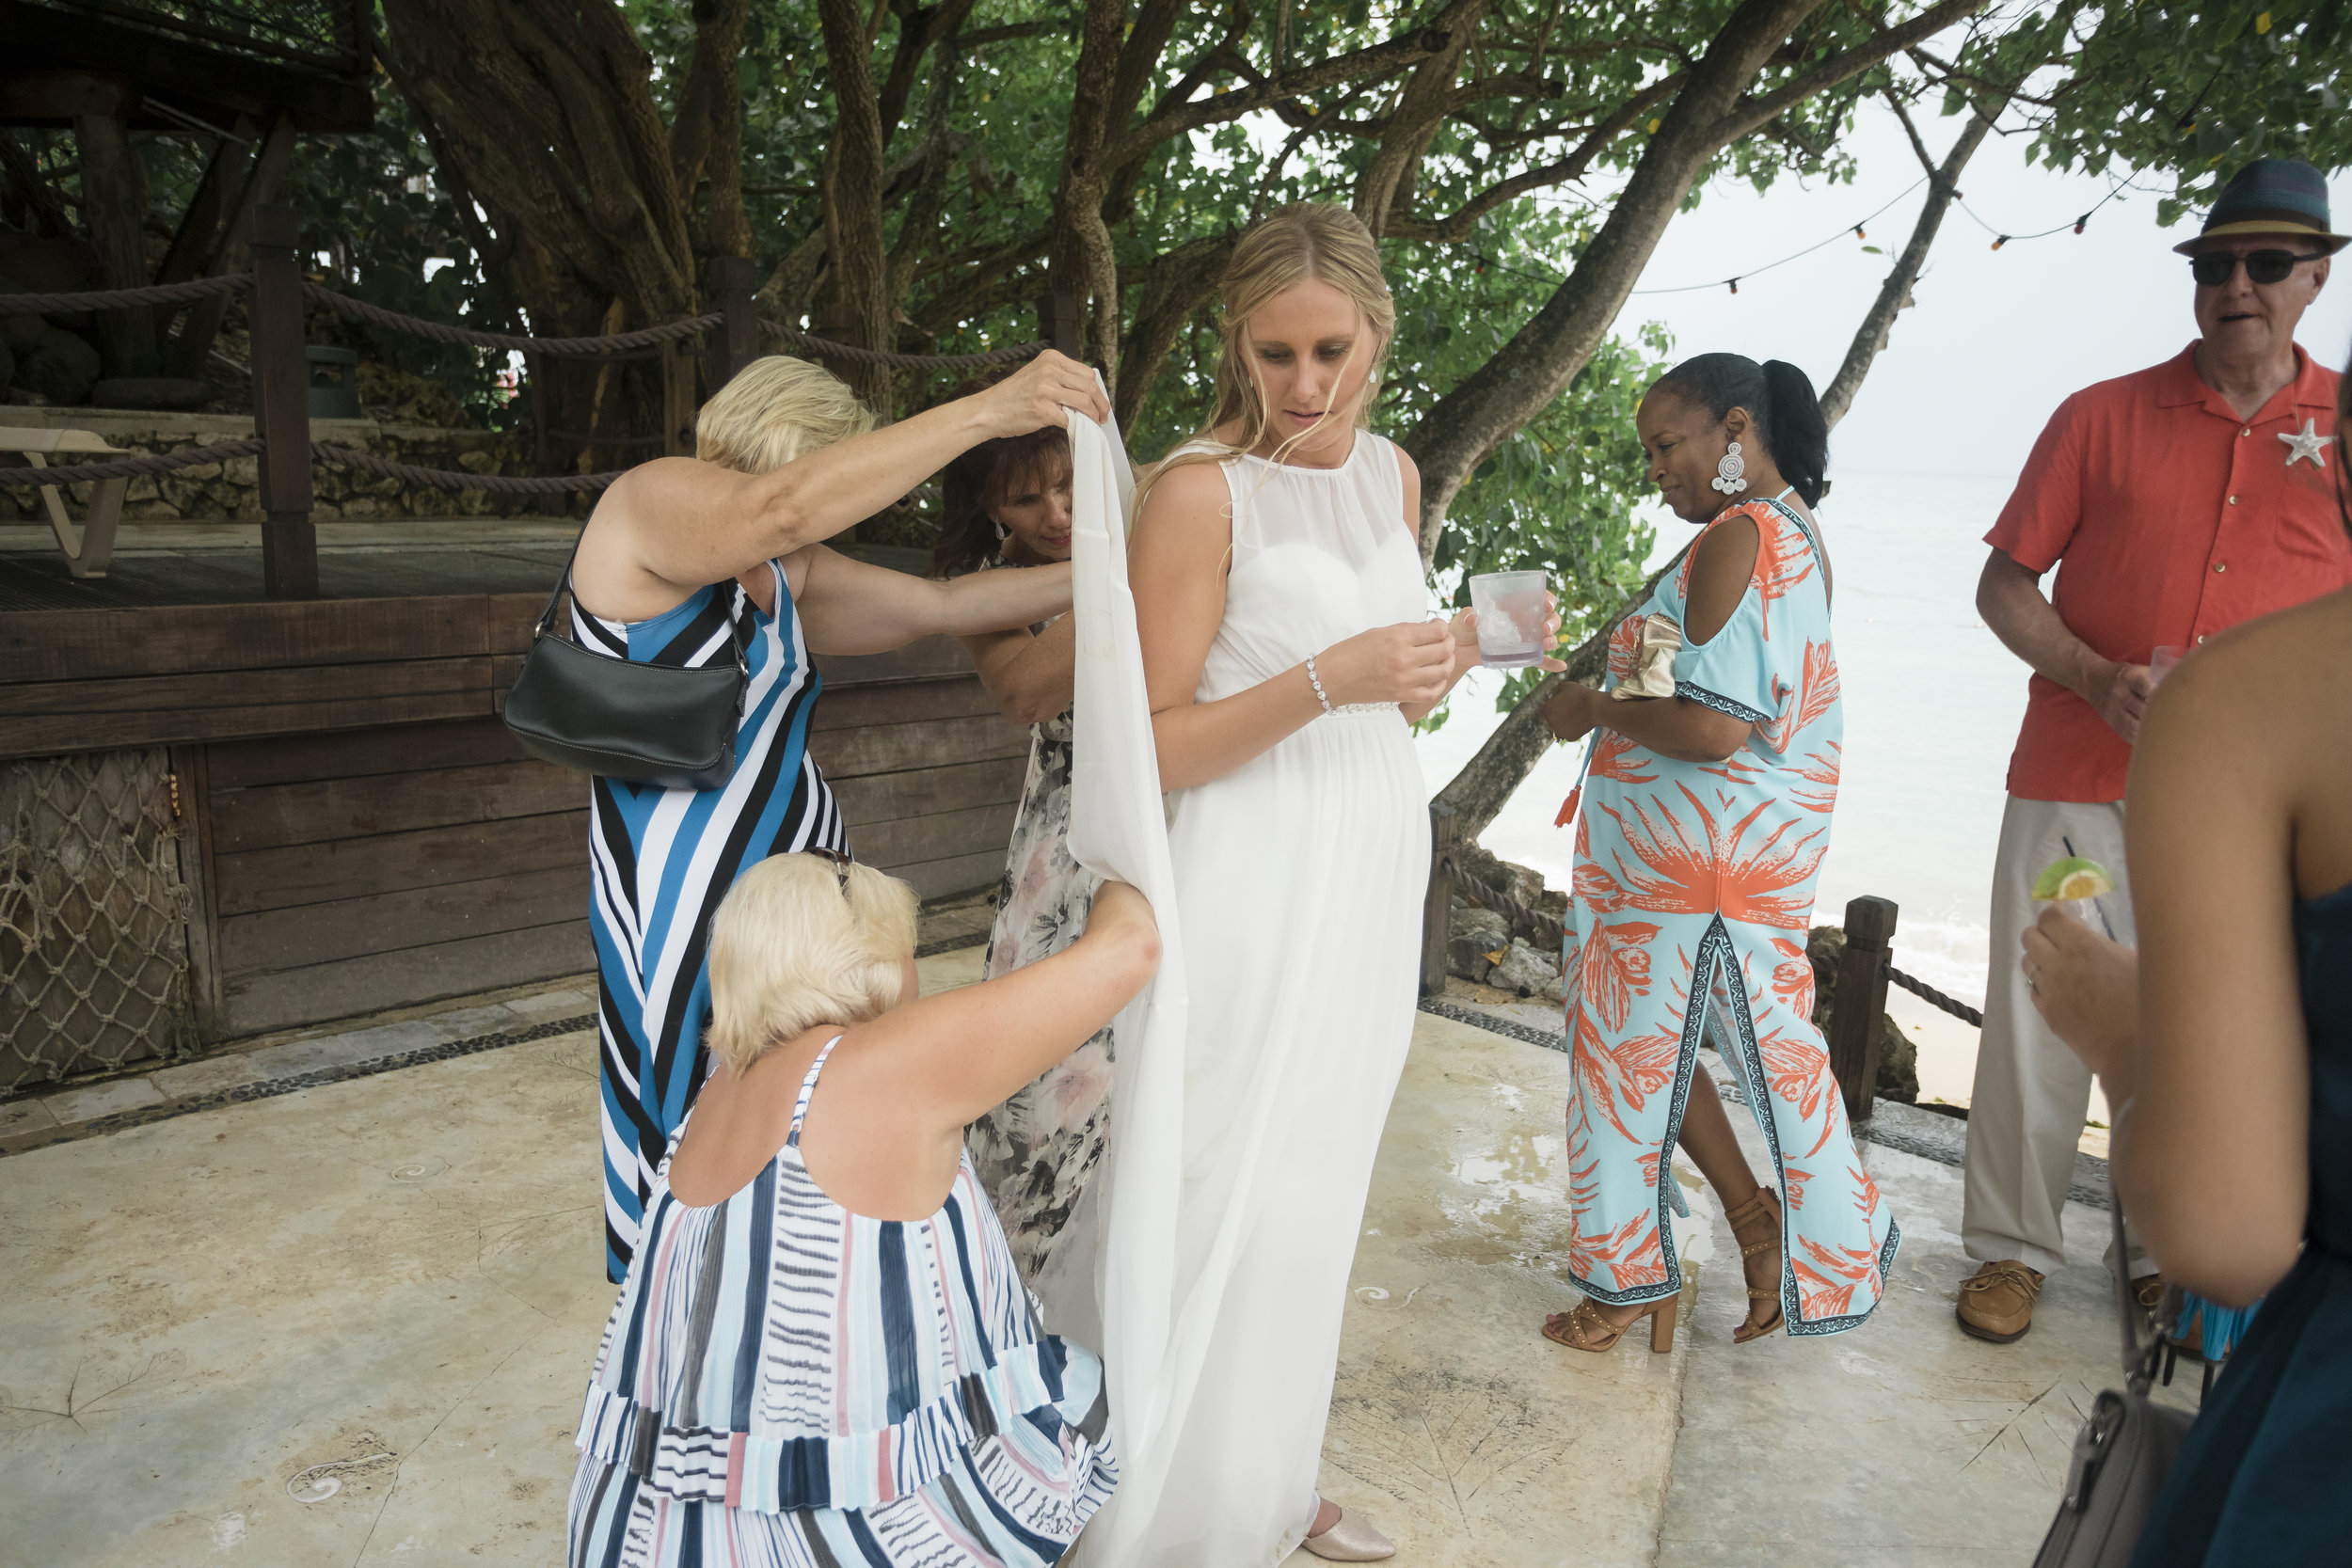 SANDALS OCHI BEACH RESORT DESTINATION WEDDING | BETHANY MELVIN PHOTOGRAPHY